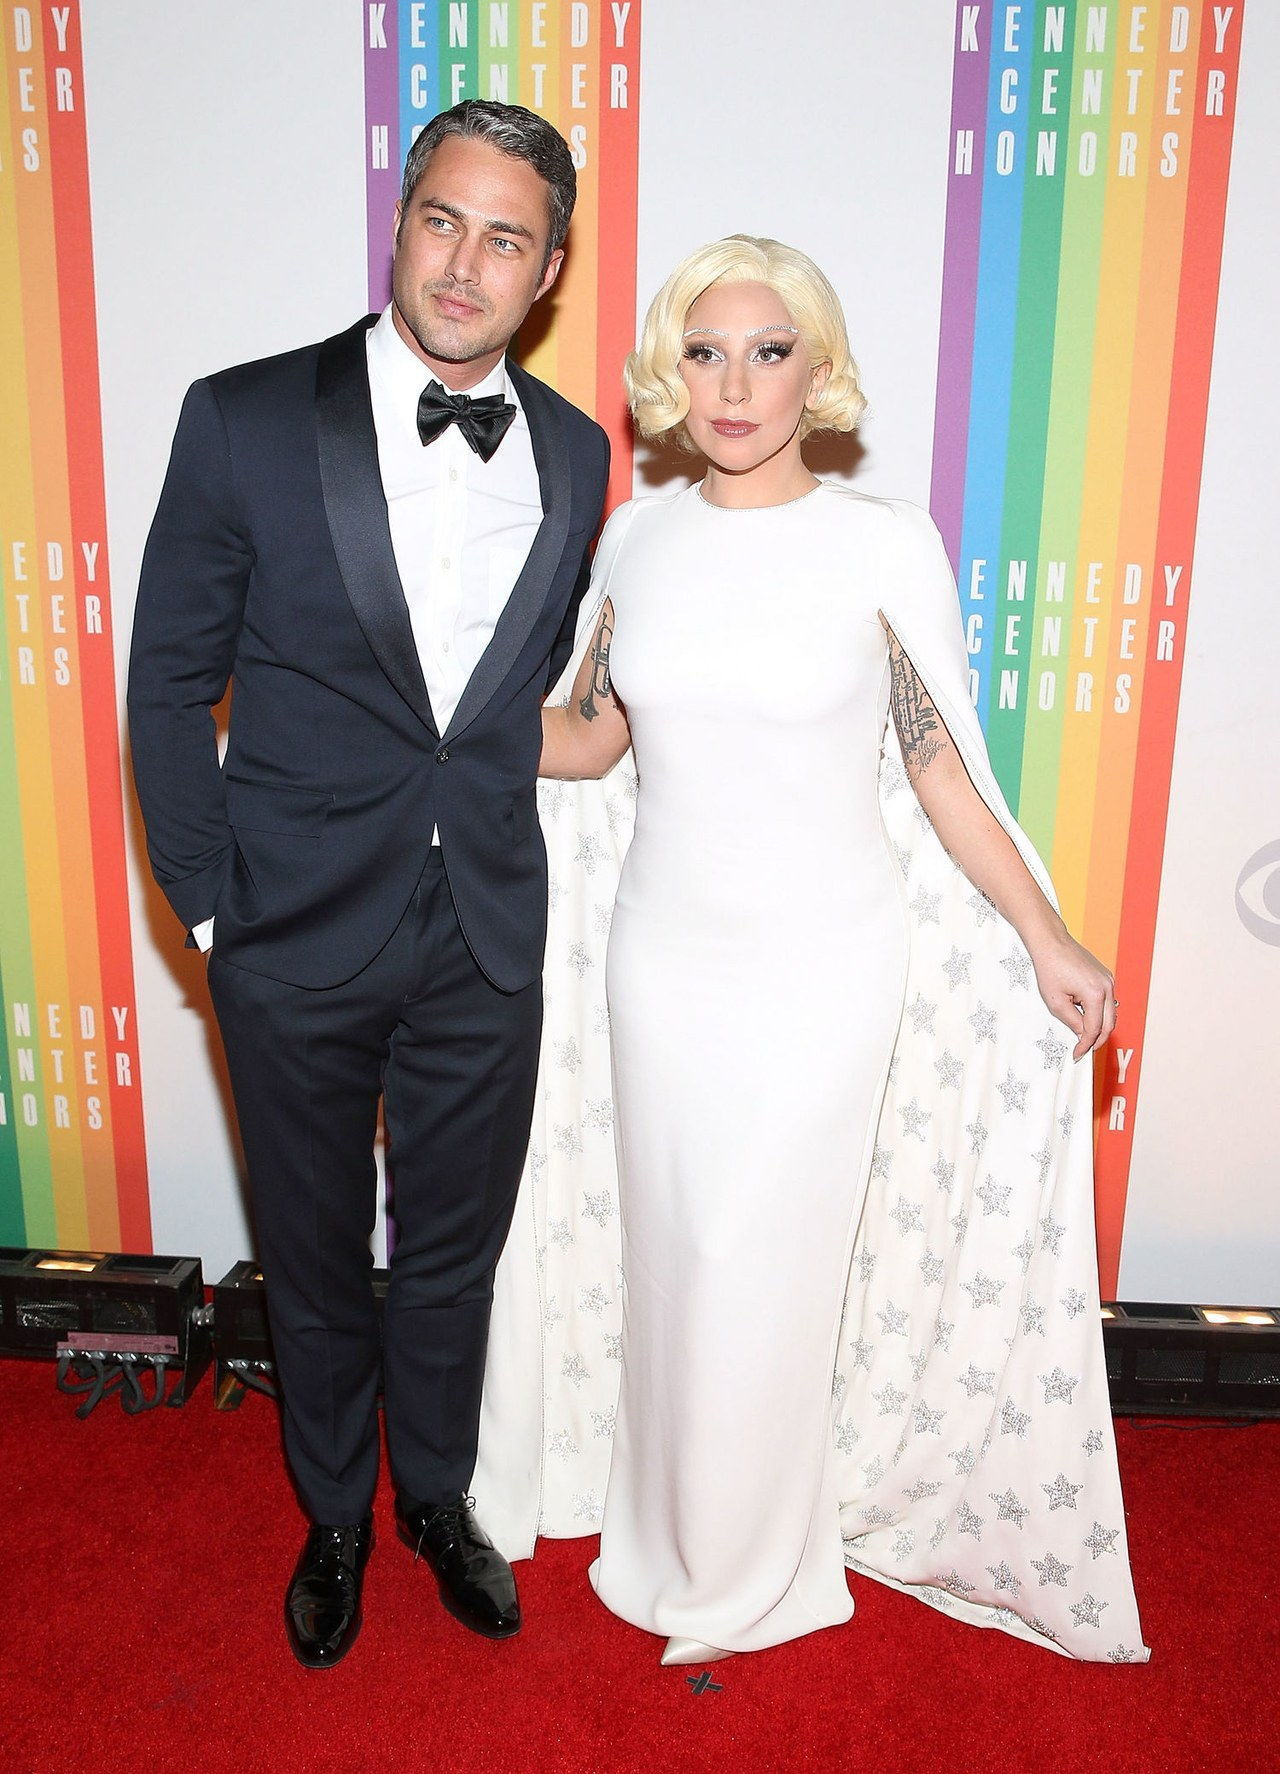 1 lady gaga wedding dresses wedding gowns celebrity weddings 0220 1